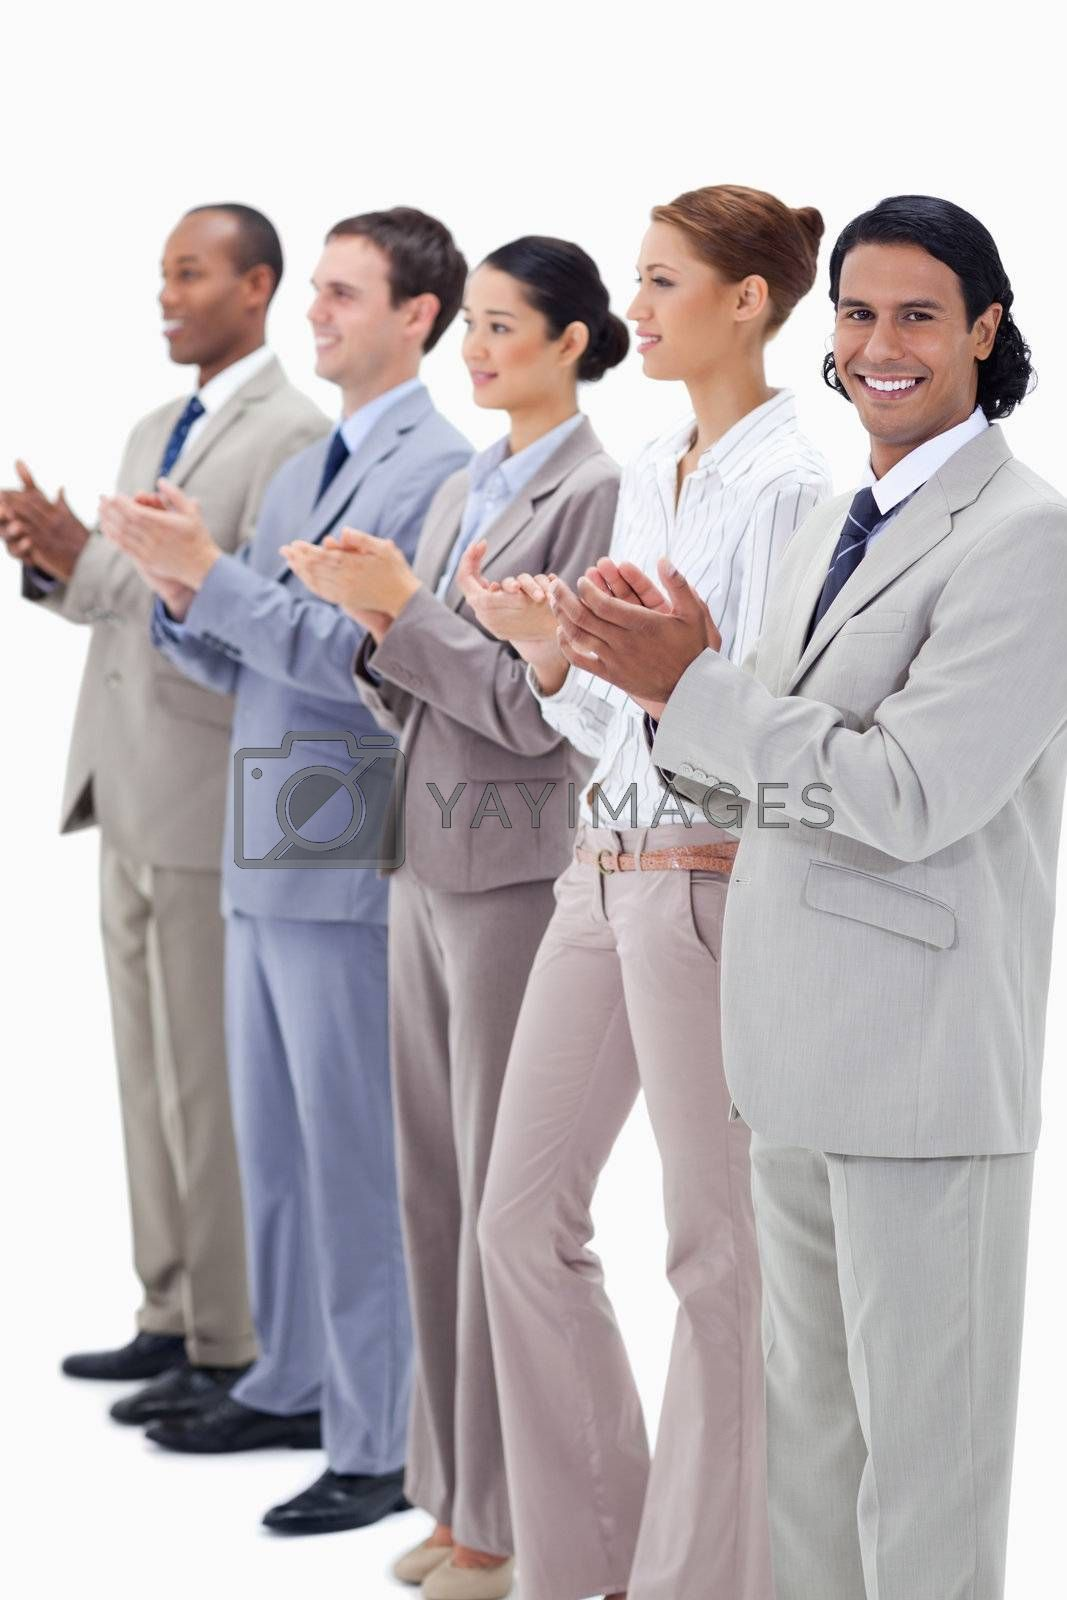 Business team smiling and applauding while looking towards the left side except for one against white background